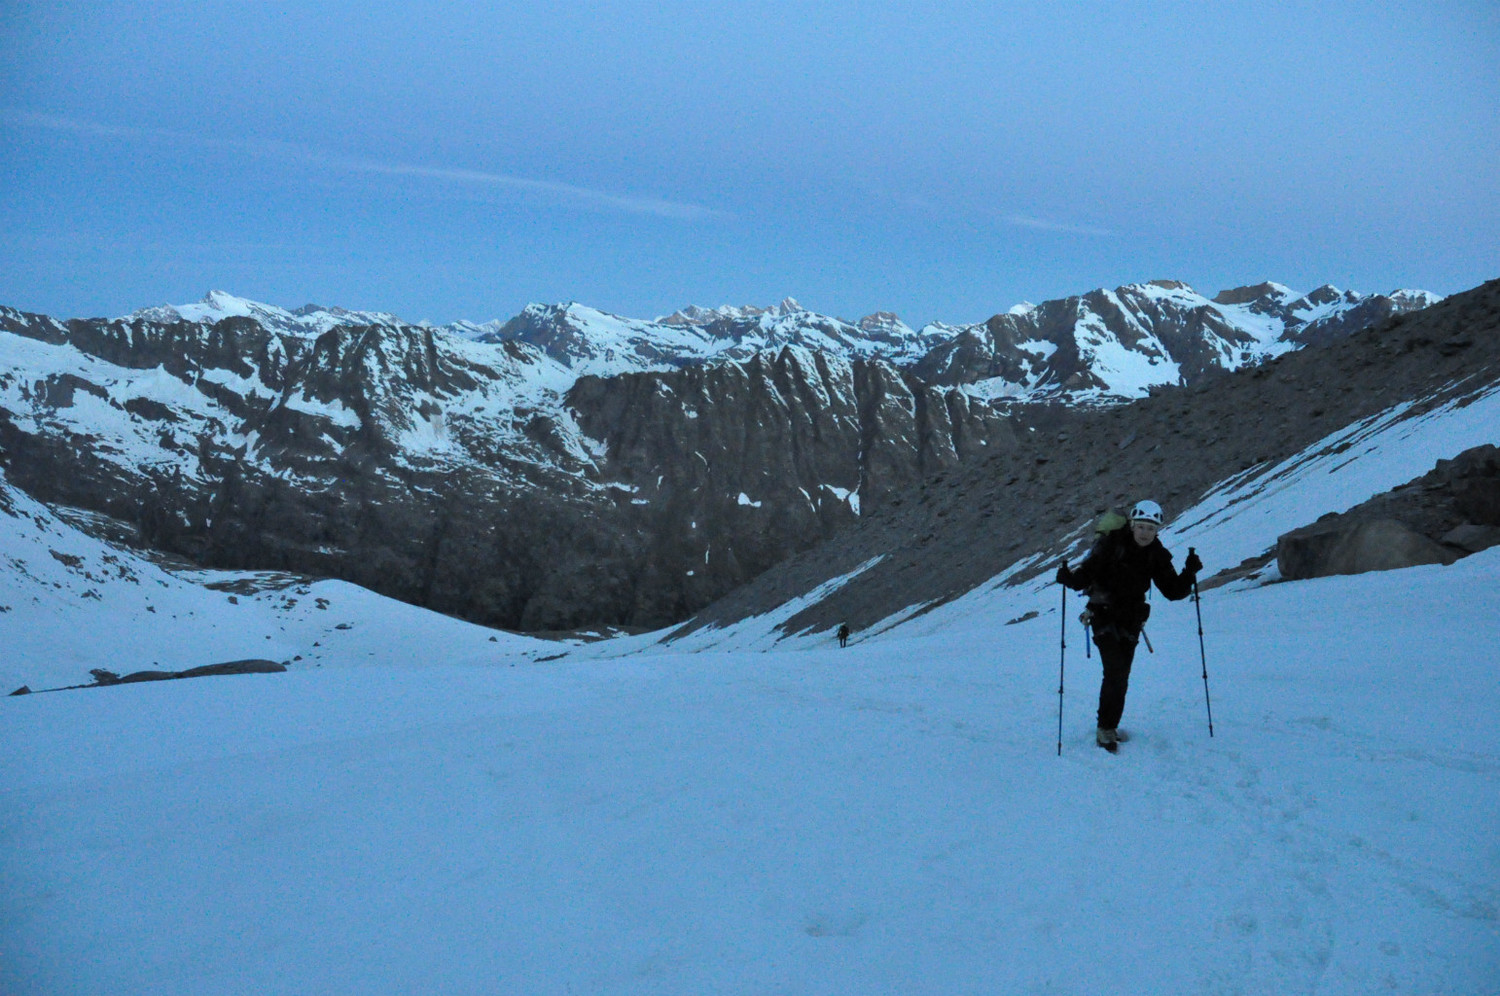 Gran Paradiso - Via normale : first snow slopes at the start of the Via normale